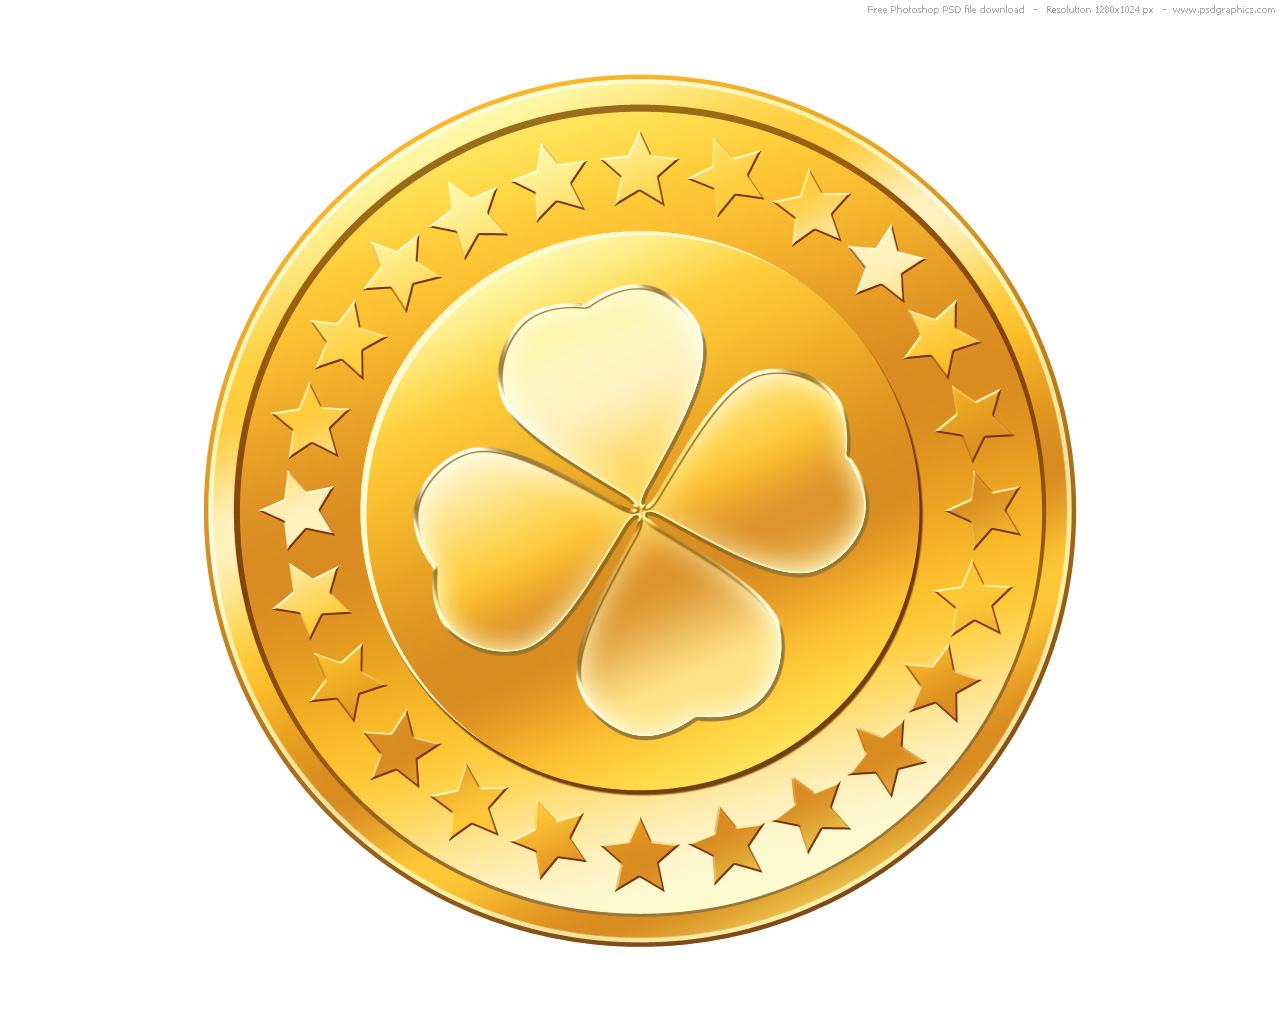 Free Gold Coins, Download Free Clip Art, Free Clip Art on Clipart.